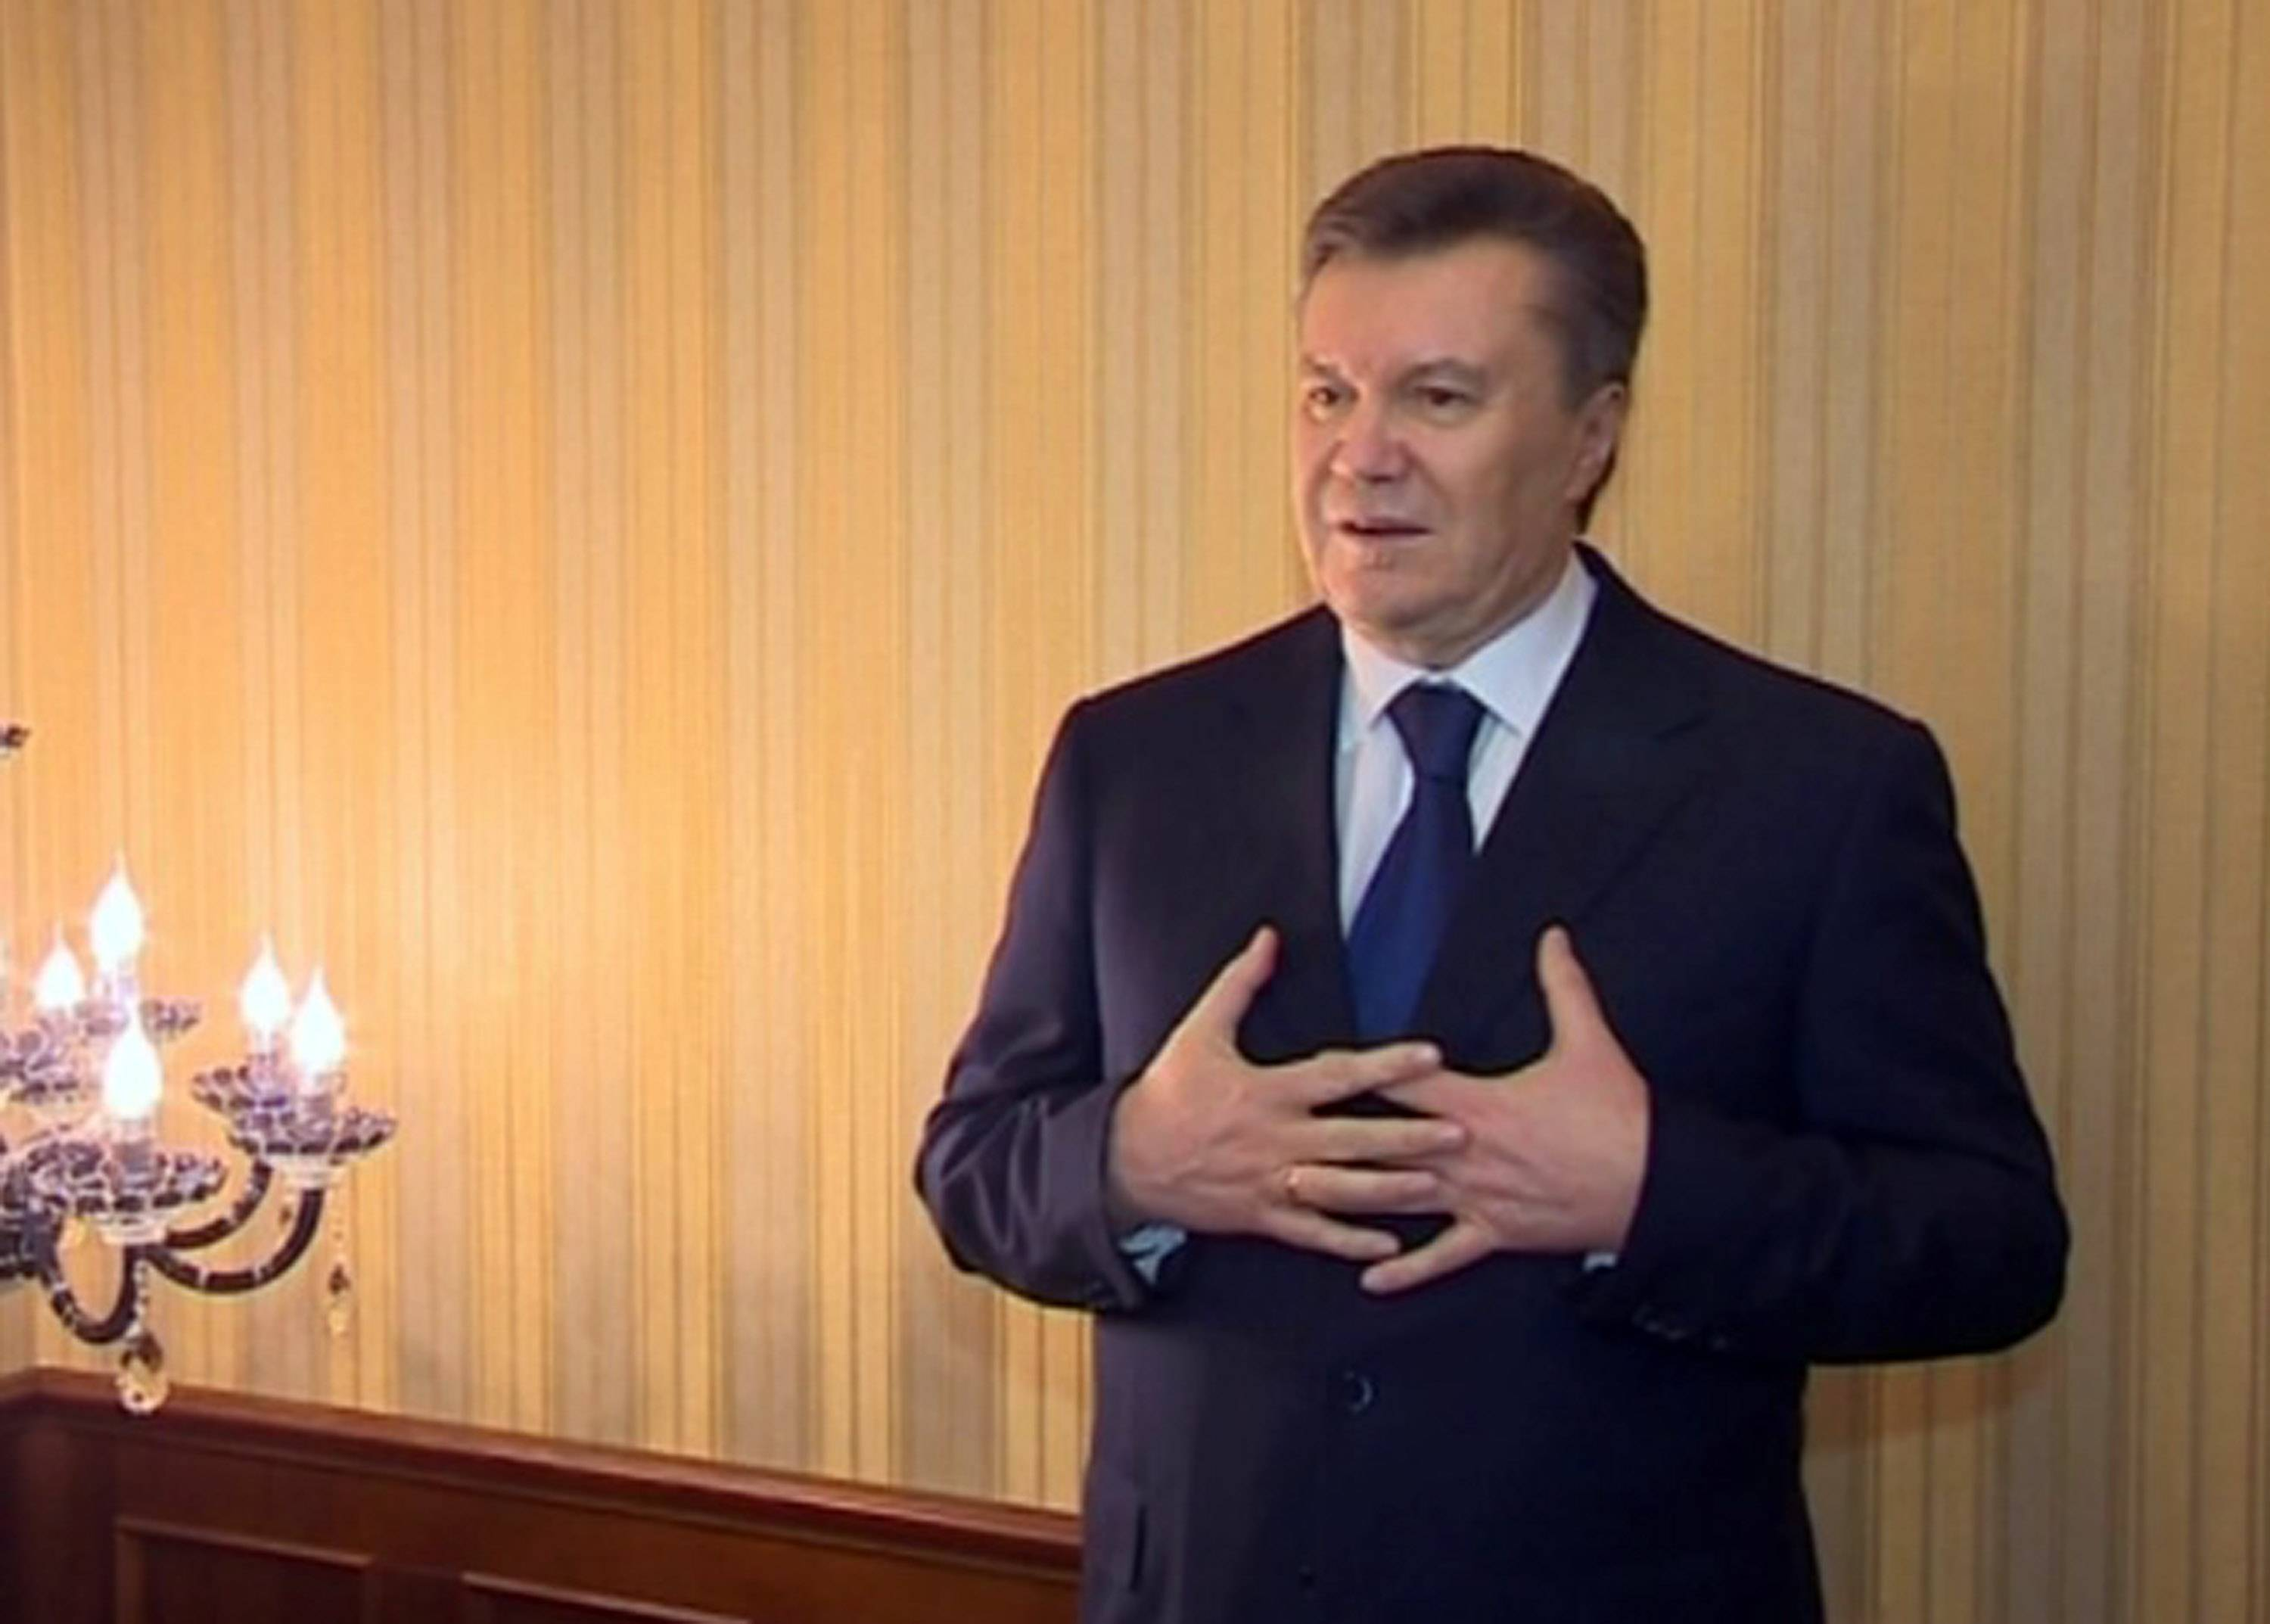 Ukraine President Viktor Yanukovych fled Kiev over the weekend and his whereabouts are unknown now. But he left behind evidence of a luxurious lifestyle at odds with the hardships many Ukrainians are suffering.